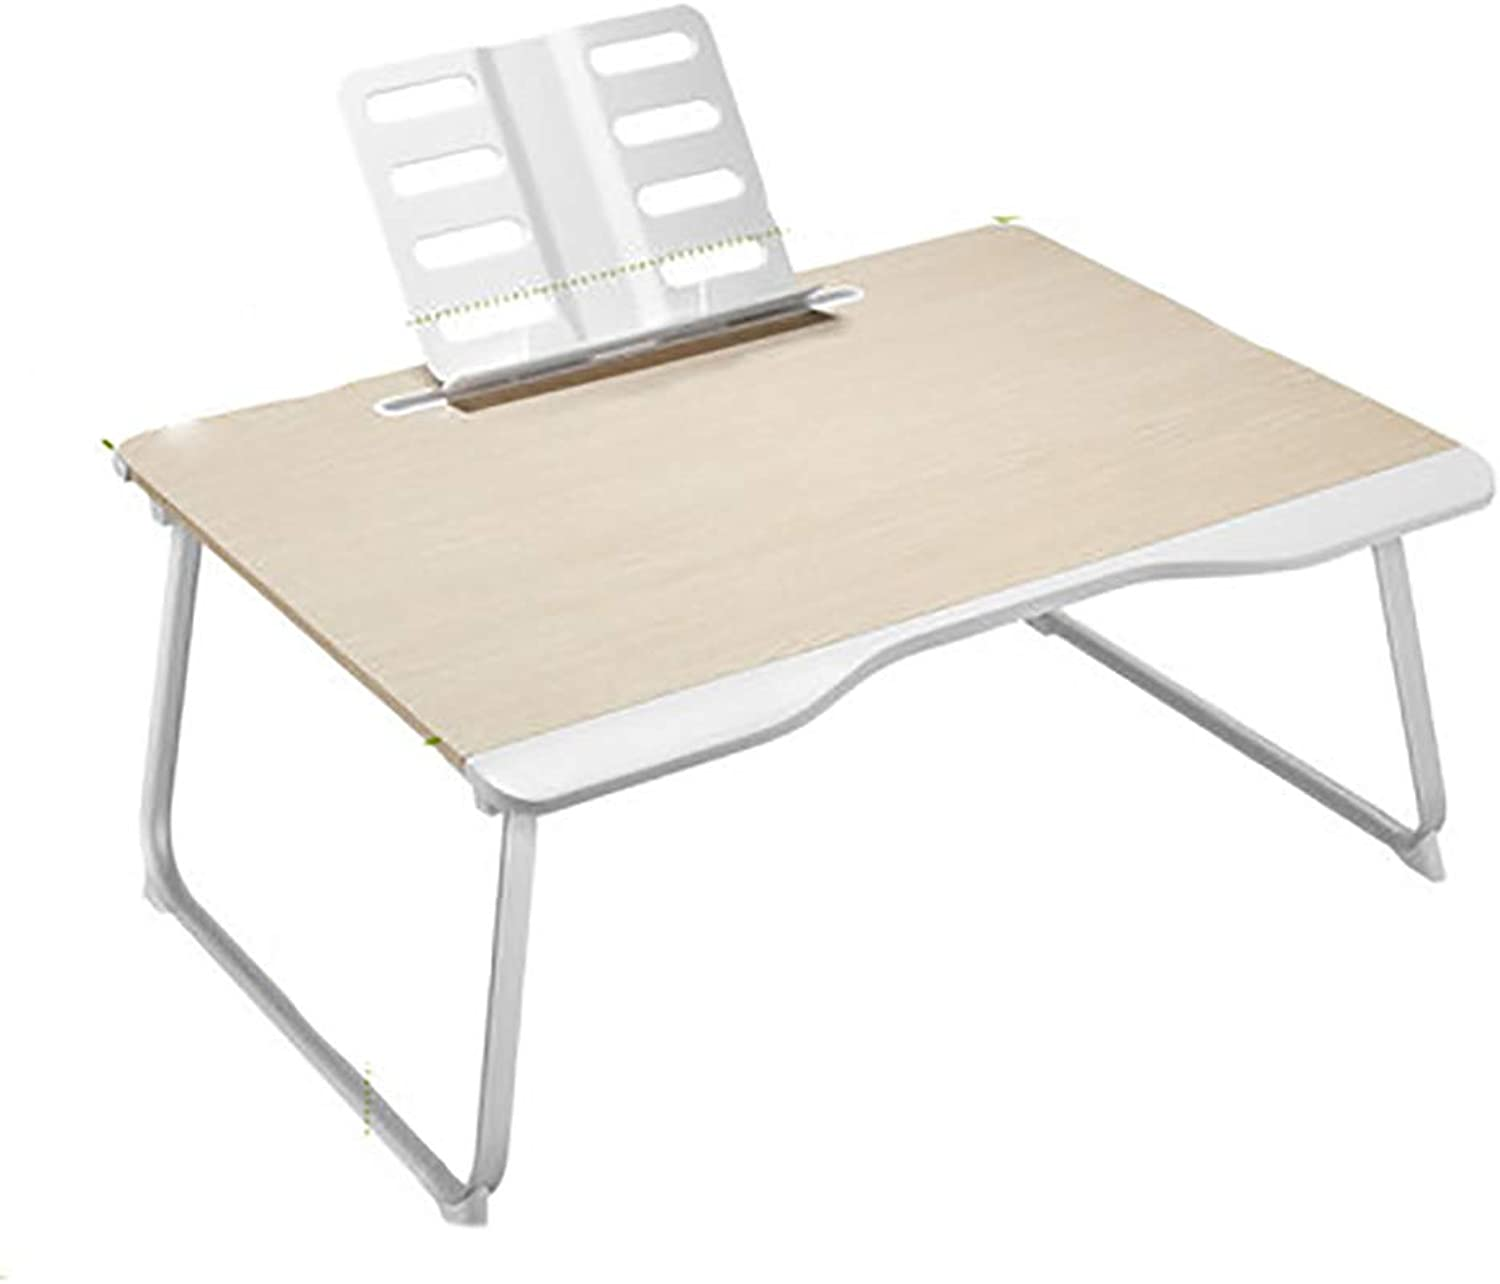 Hai Yan Portable folding table Folding Table - Bed Small Table Laptop Table College Dormitory Bed Desk Multi-function Folding Desk Lazy Small Table Home Bedroom Bed With Learning Heightening Large Siz